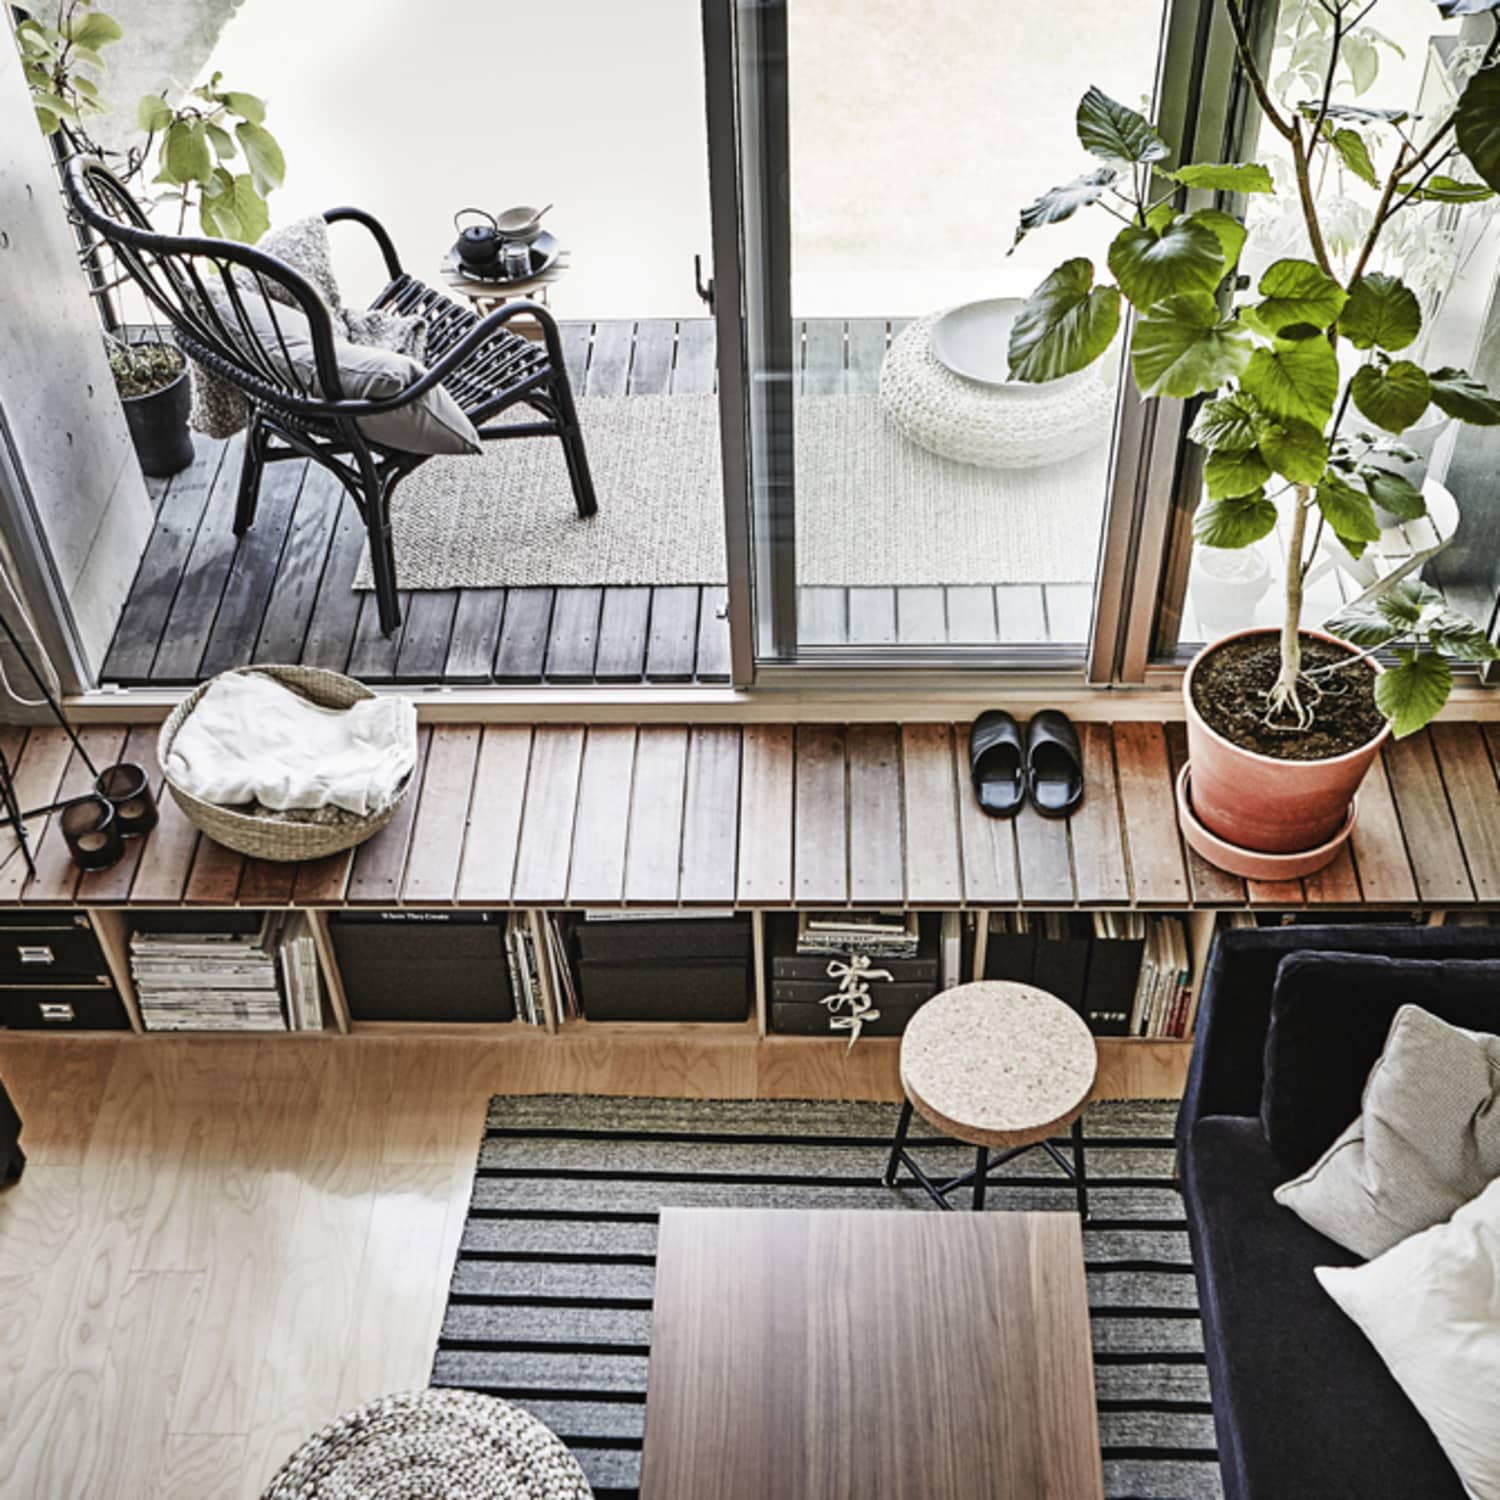 IKEA Apartment Small Space Ideas Under 300 Sq Ft | Apartment ...